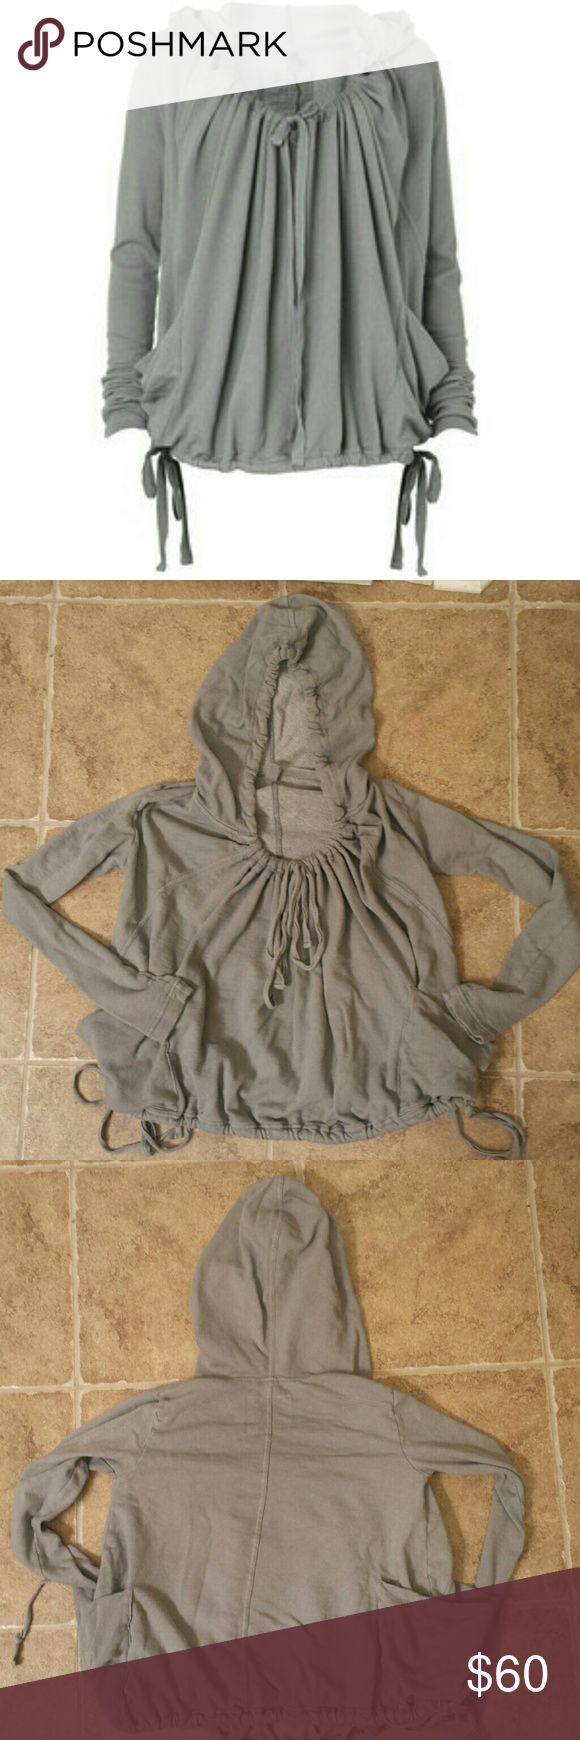 All saints Locksley drawstring hoodie Has a VERY faint mark circled with the red paper. All tags removed. I'm a sz US 2/4 small UK 6/8 in tops. This is oversized in the body but the arms are fitted true to size. Top is size UK 6. very comfy. All Saints Sweaters